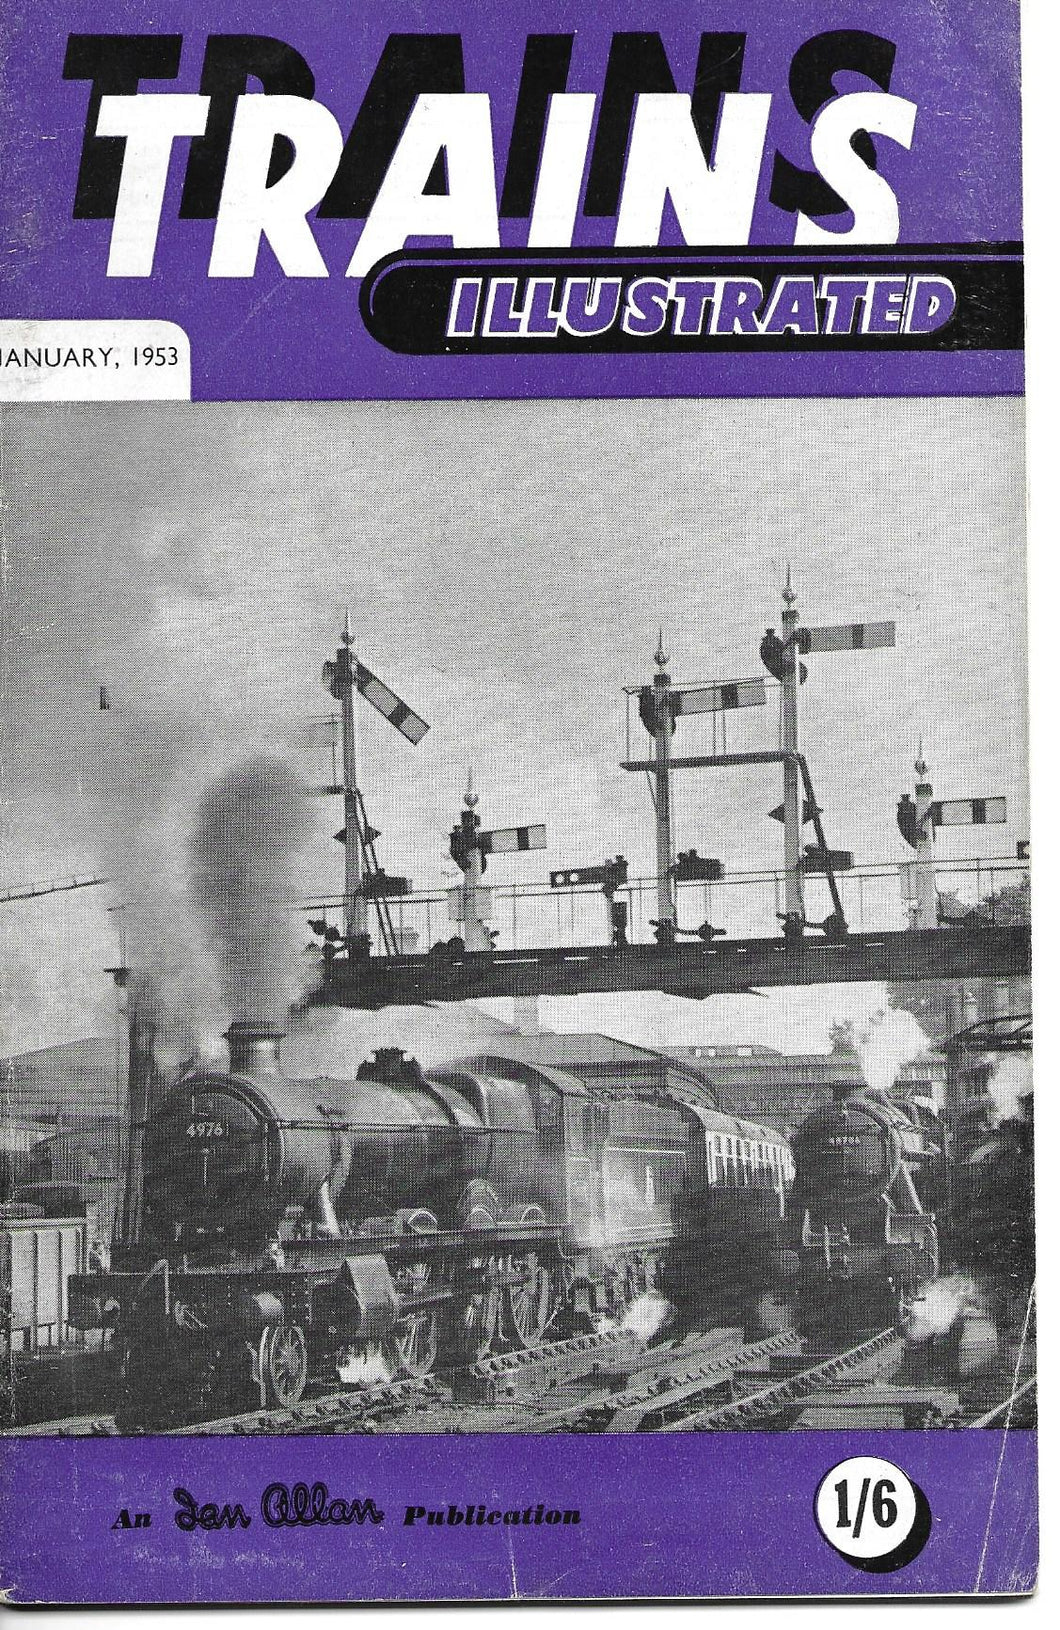 Trains Illustrated, Ian Allan, January 1953, Vol VI No.1